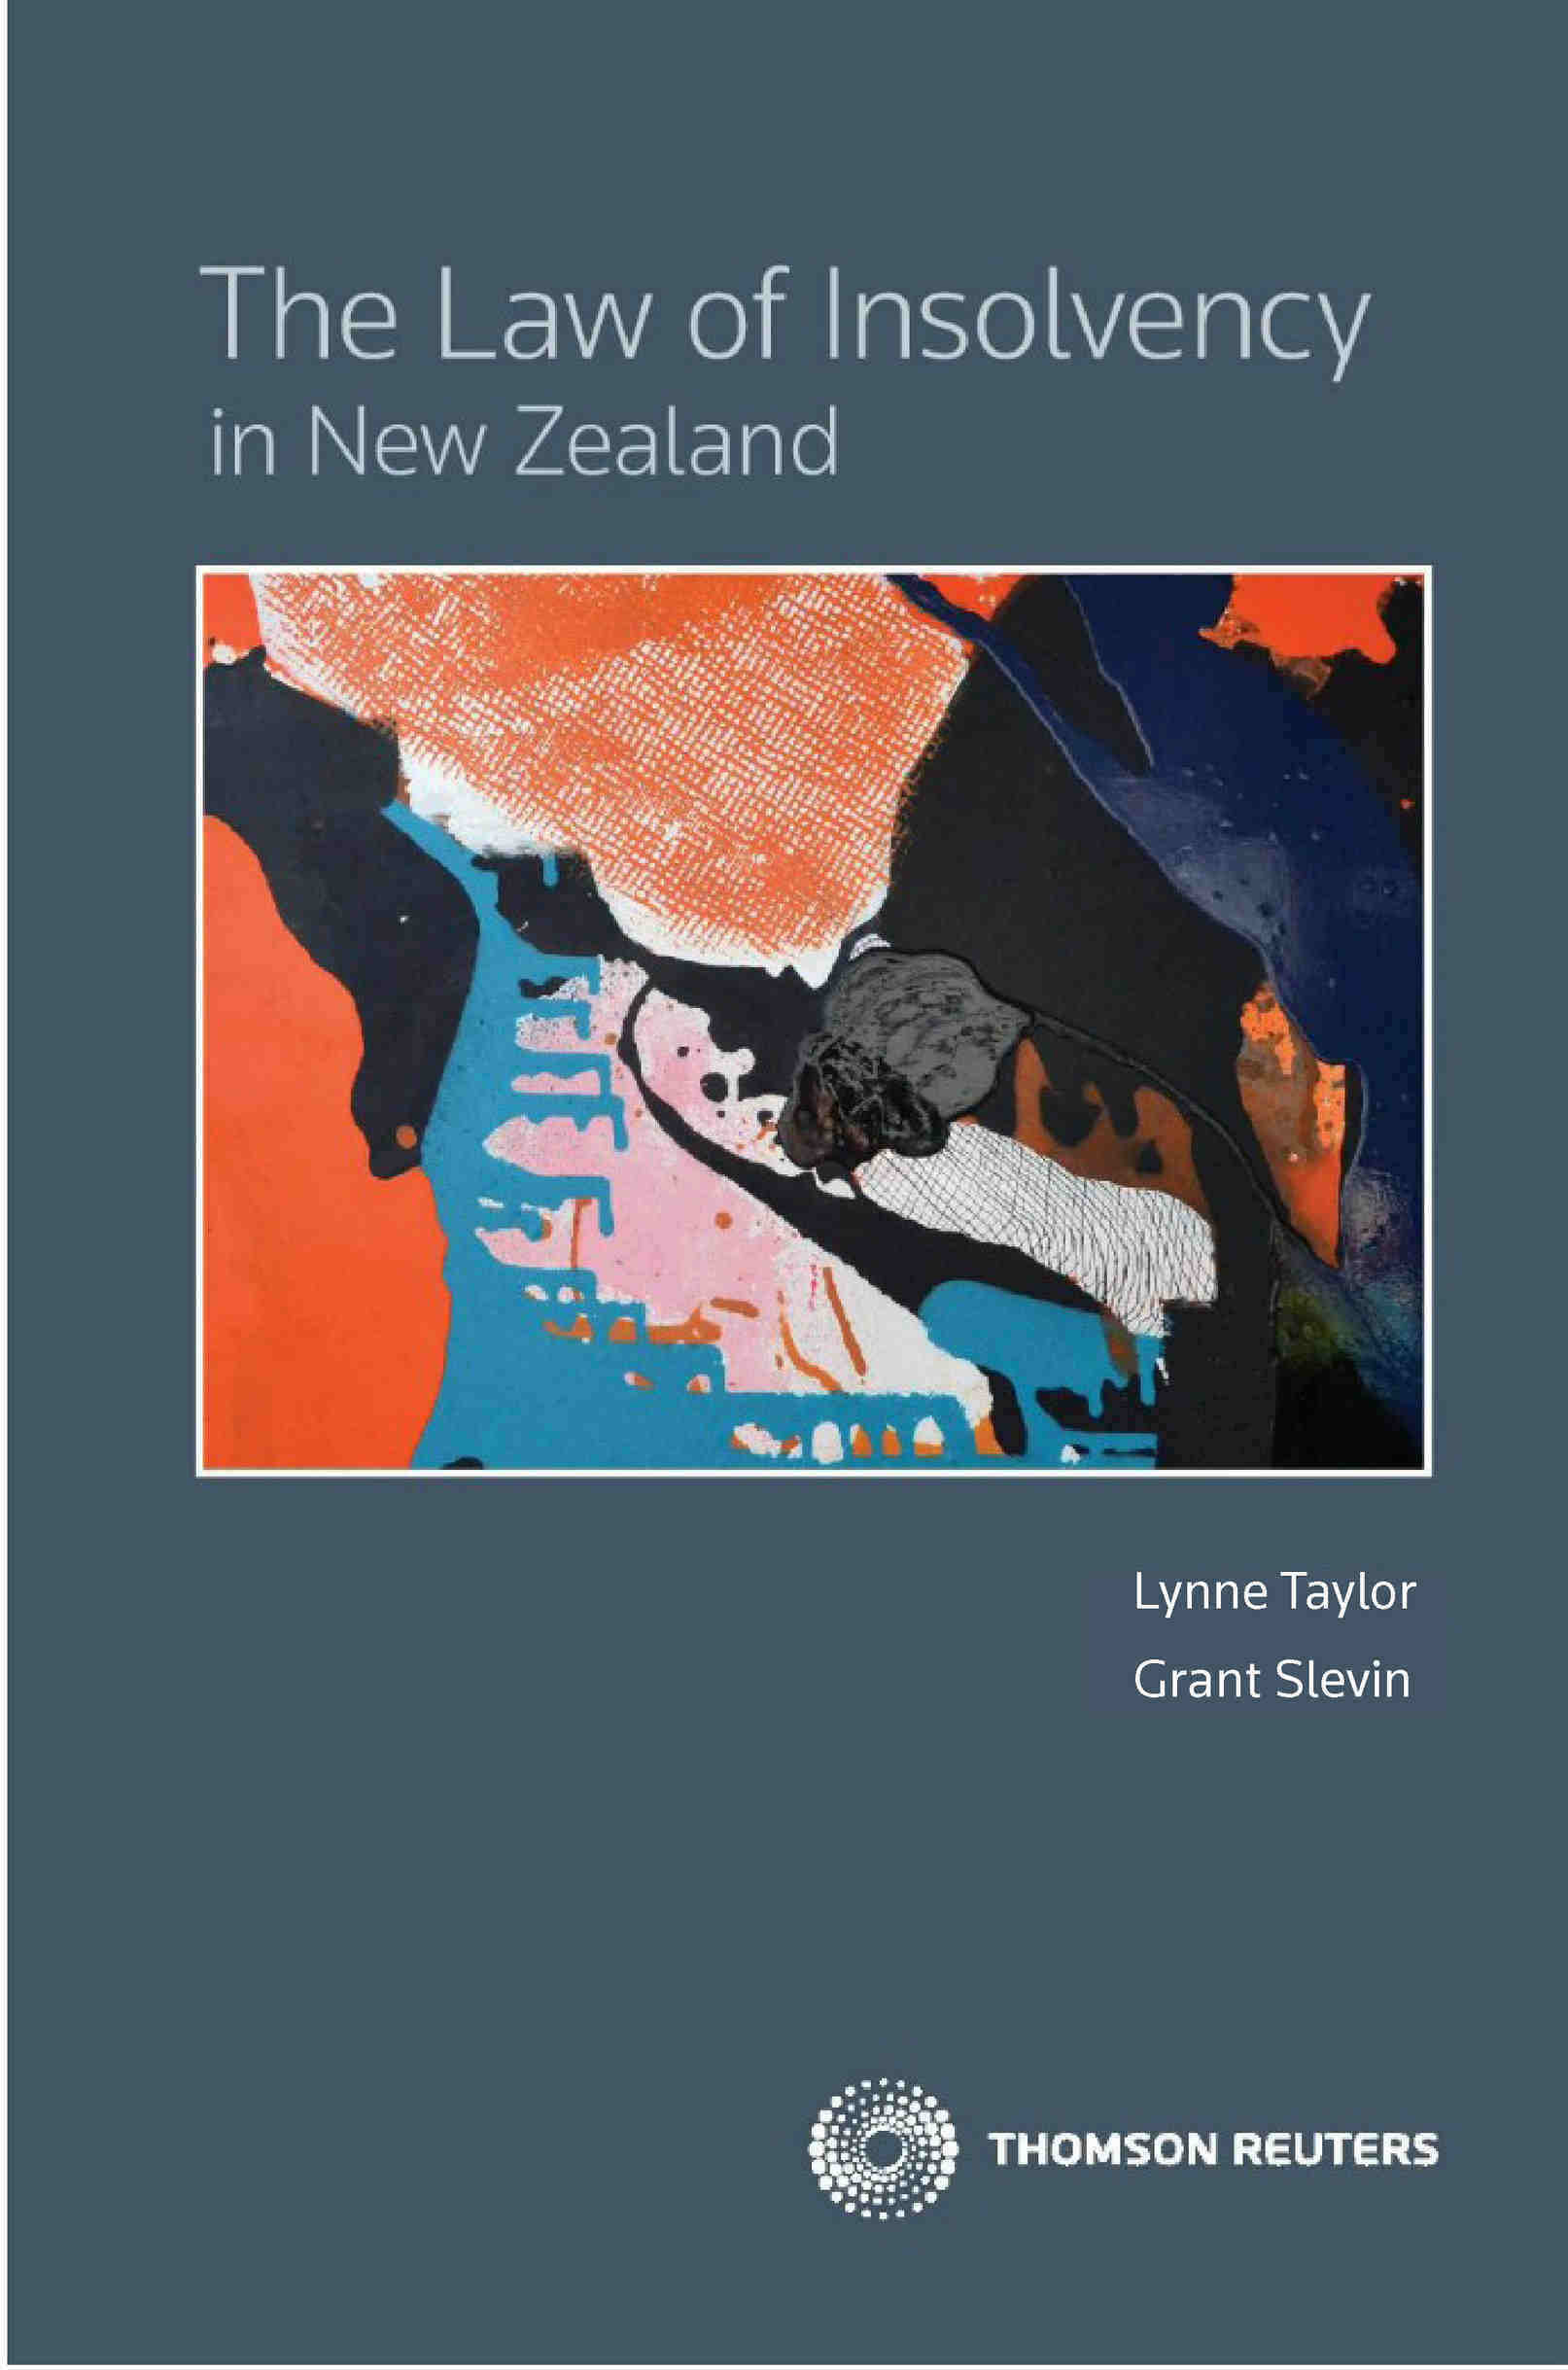 The Law of Insolvency in New Zealand (Book)